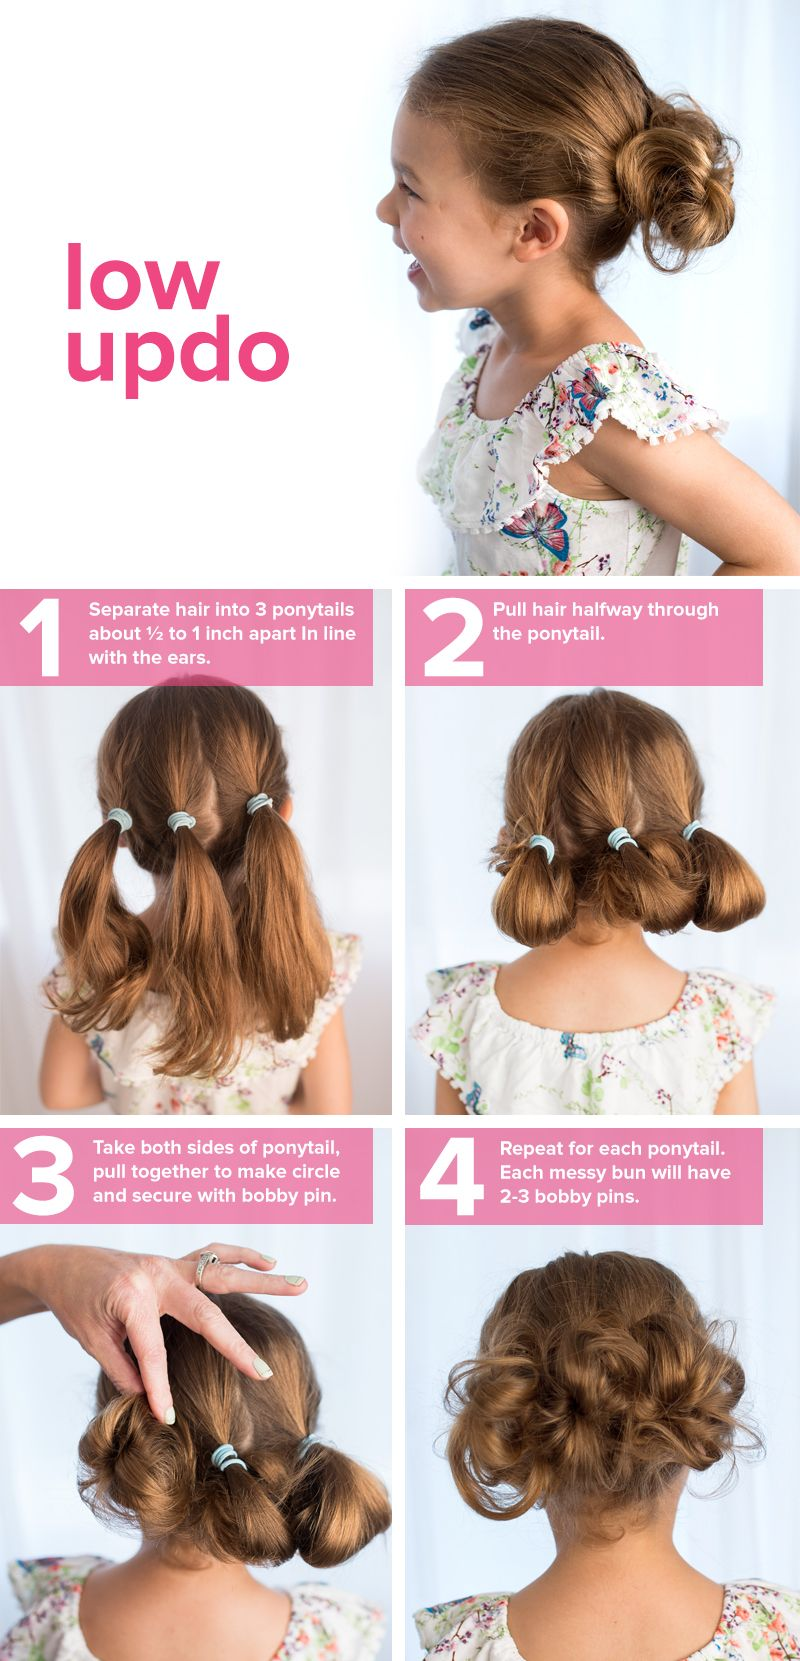 5 easy back,to school hairstyles for girls in 2019